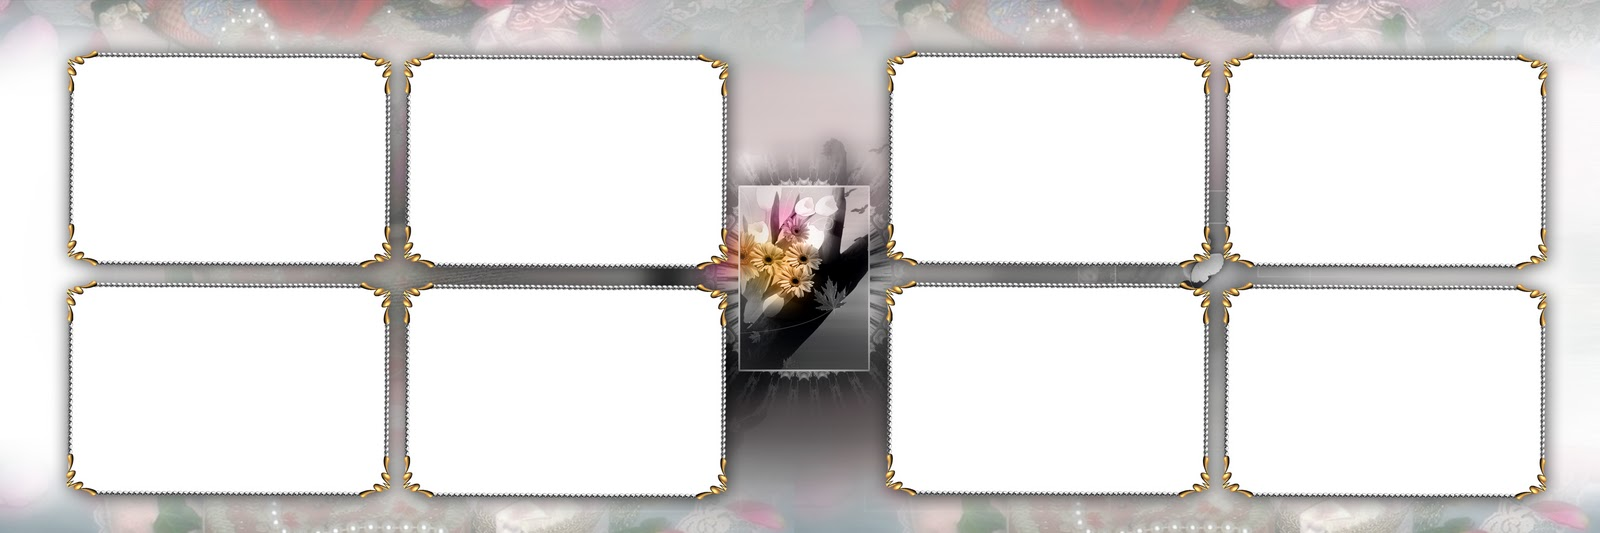 Collection Of Karizma Photo Frame Templates2